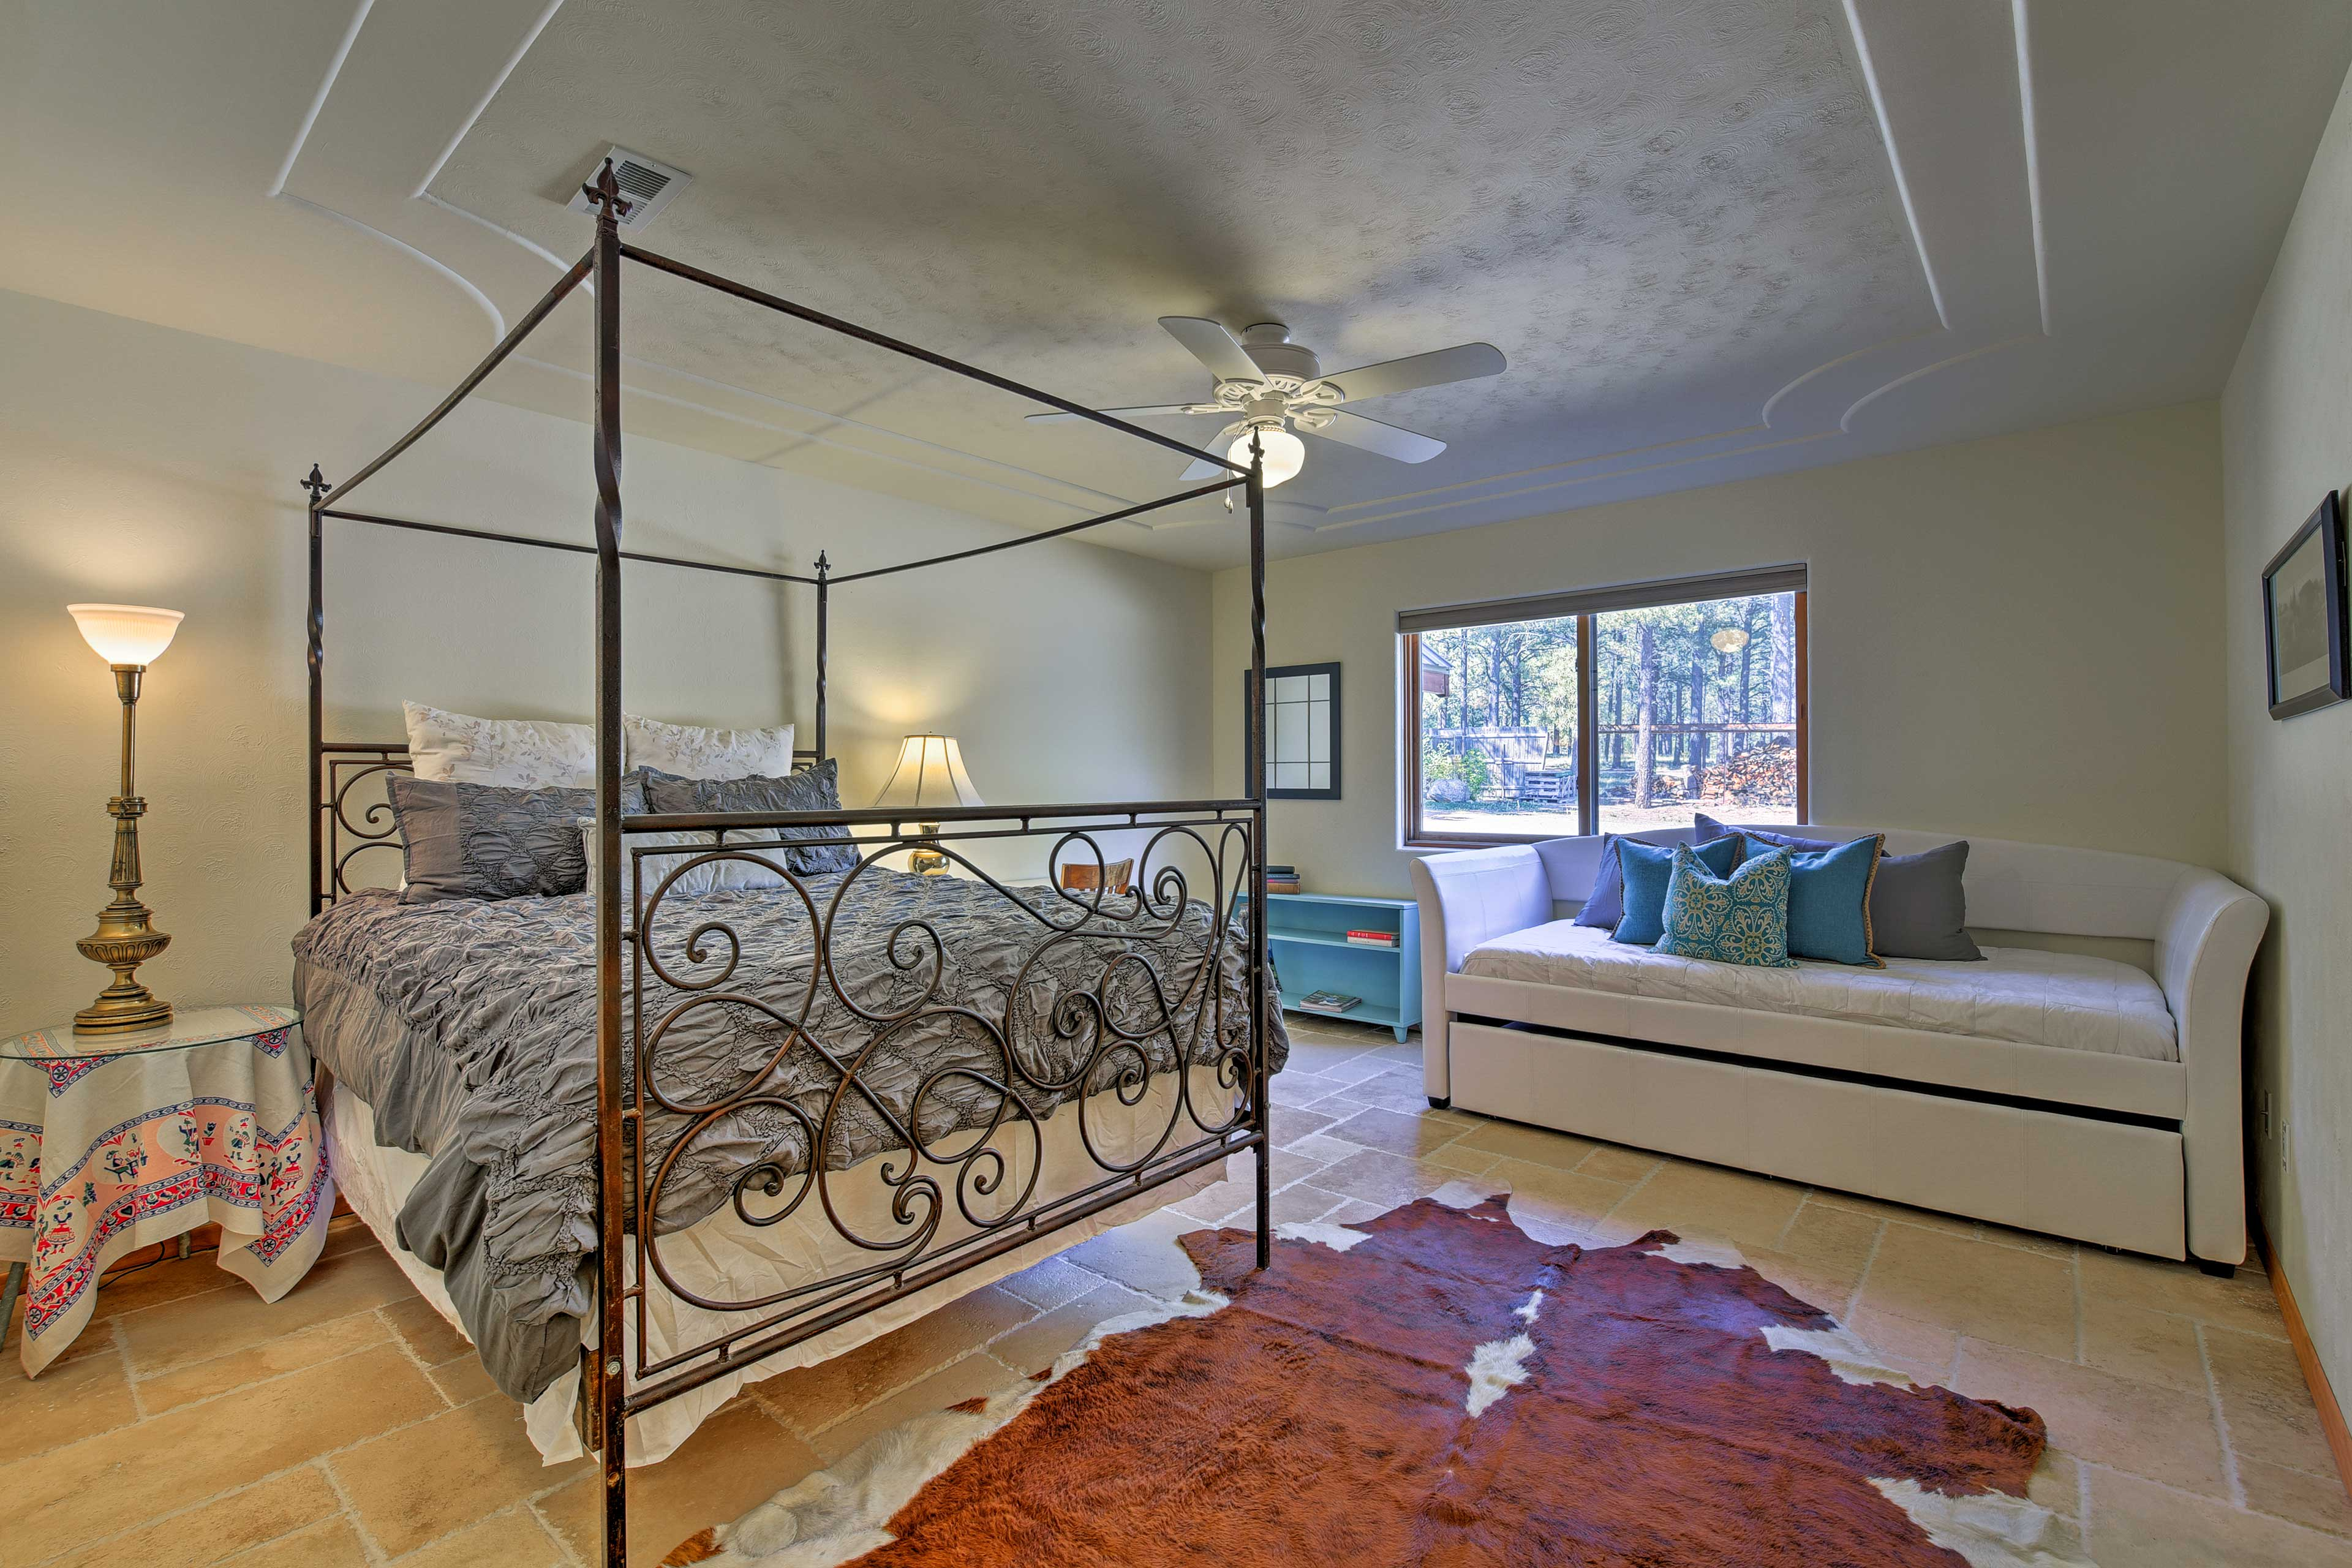 Curl up in the wrought iron queen bed for a restful night's sleep.